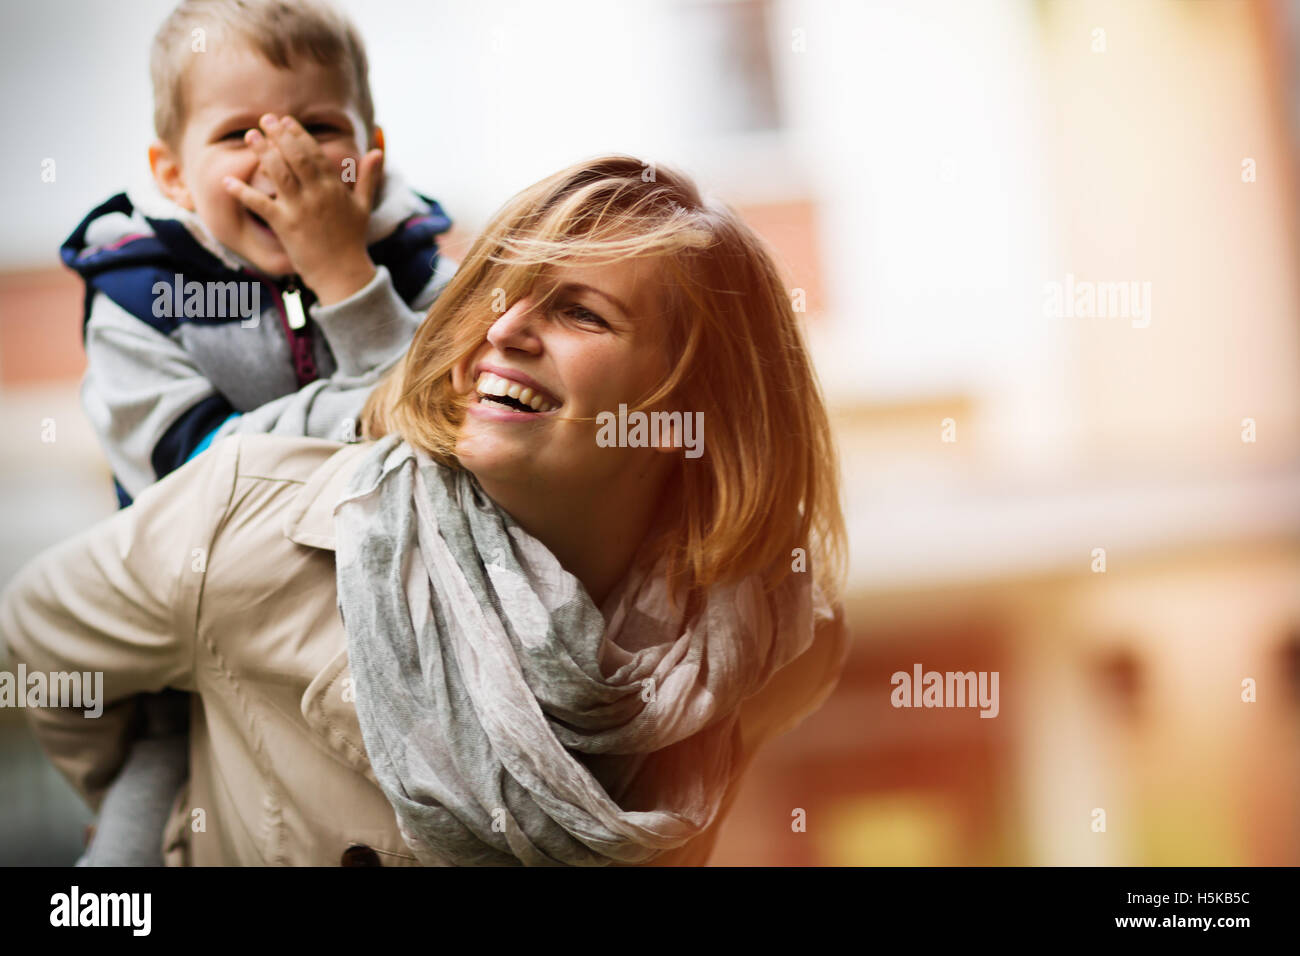 Happy mother and child smiling outdoors - Stock Image